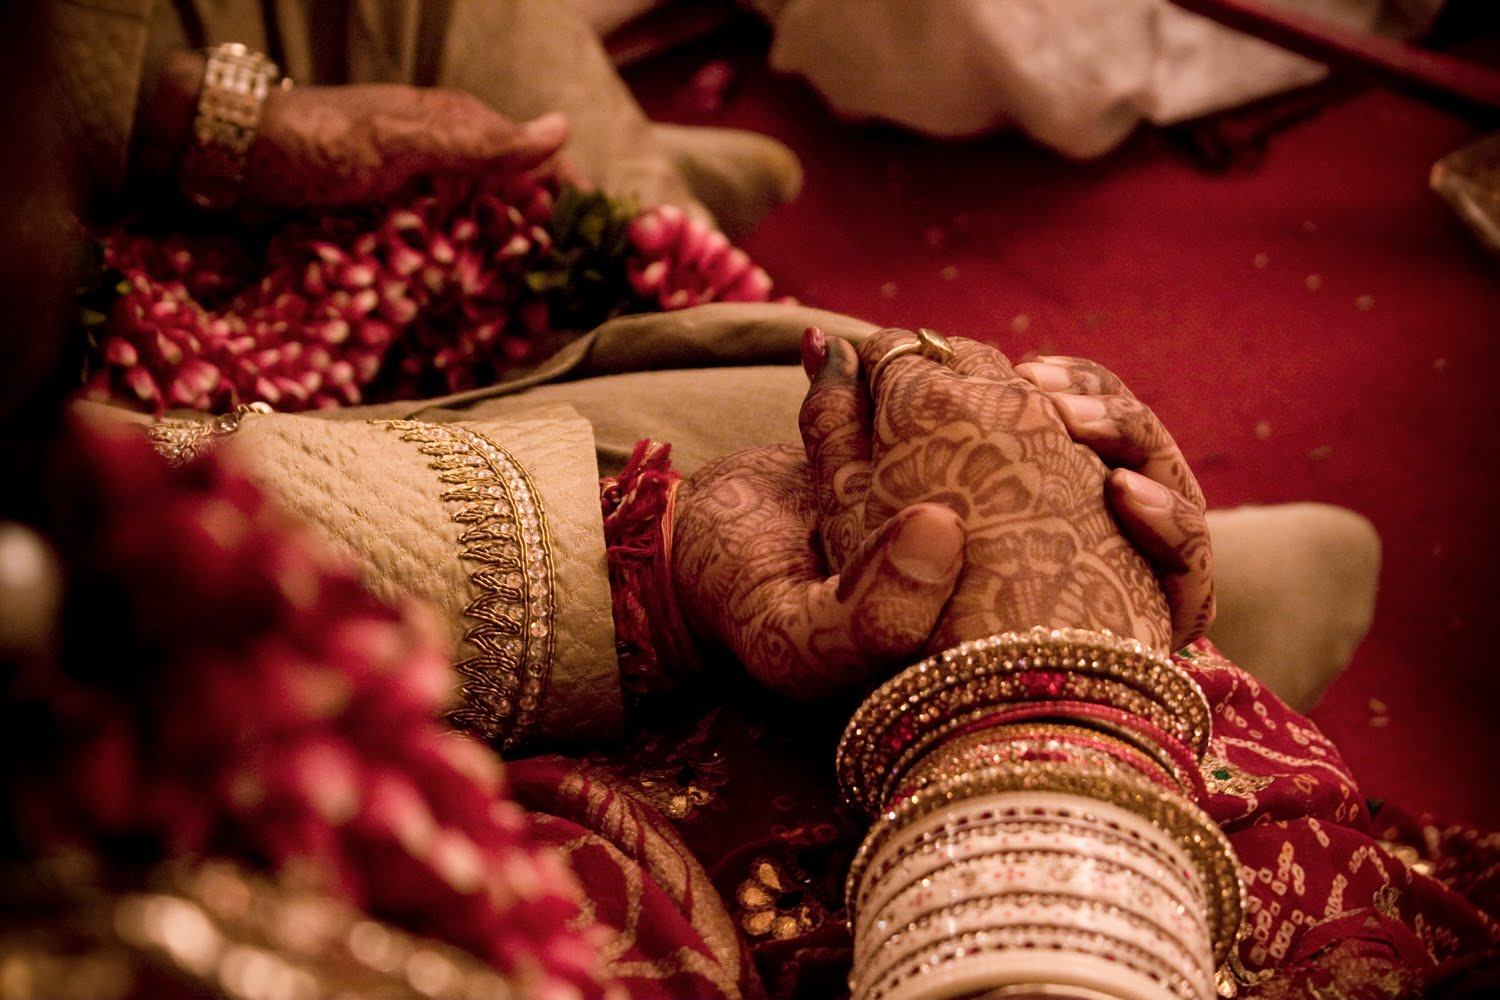 Women walk out on 'dark grooms', call off marriage at last minute